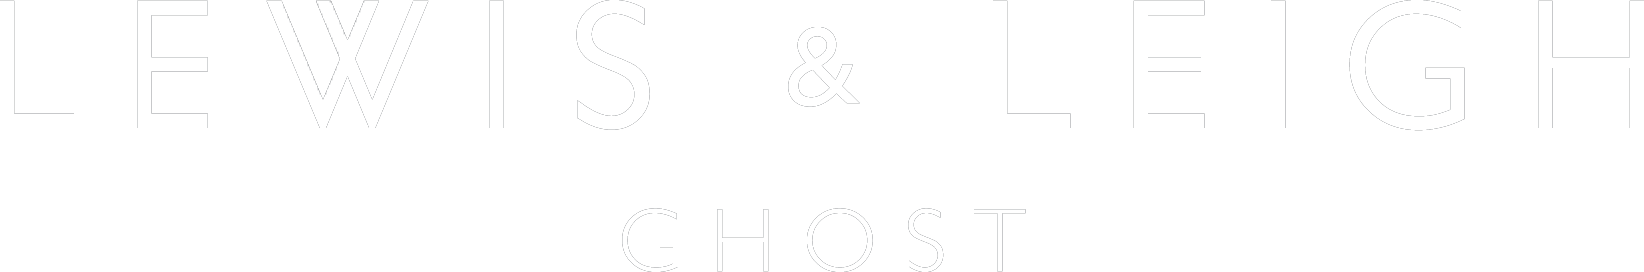 LEWIS&LEIGH_LOGO_WITH_ALBUM_TITLE_WHITE.png